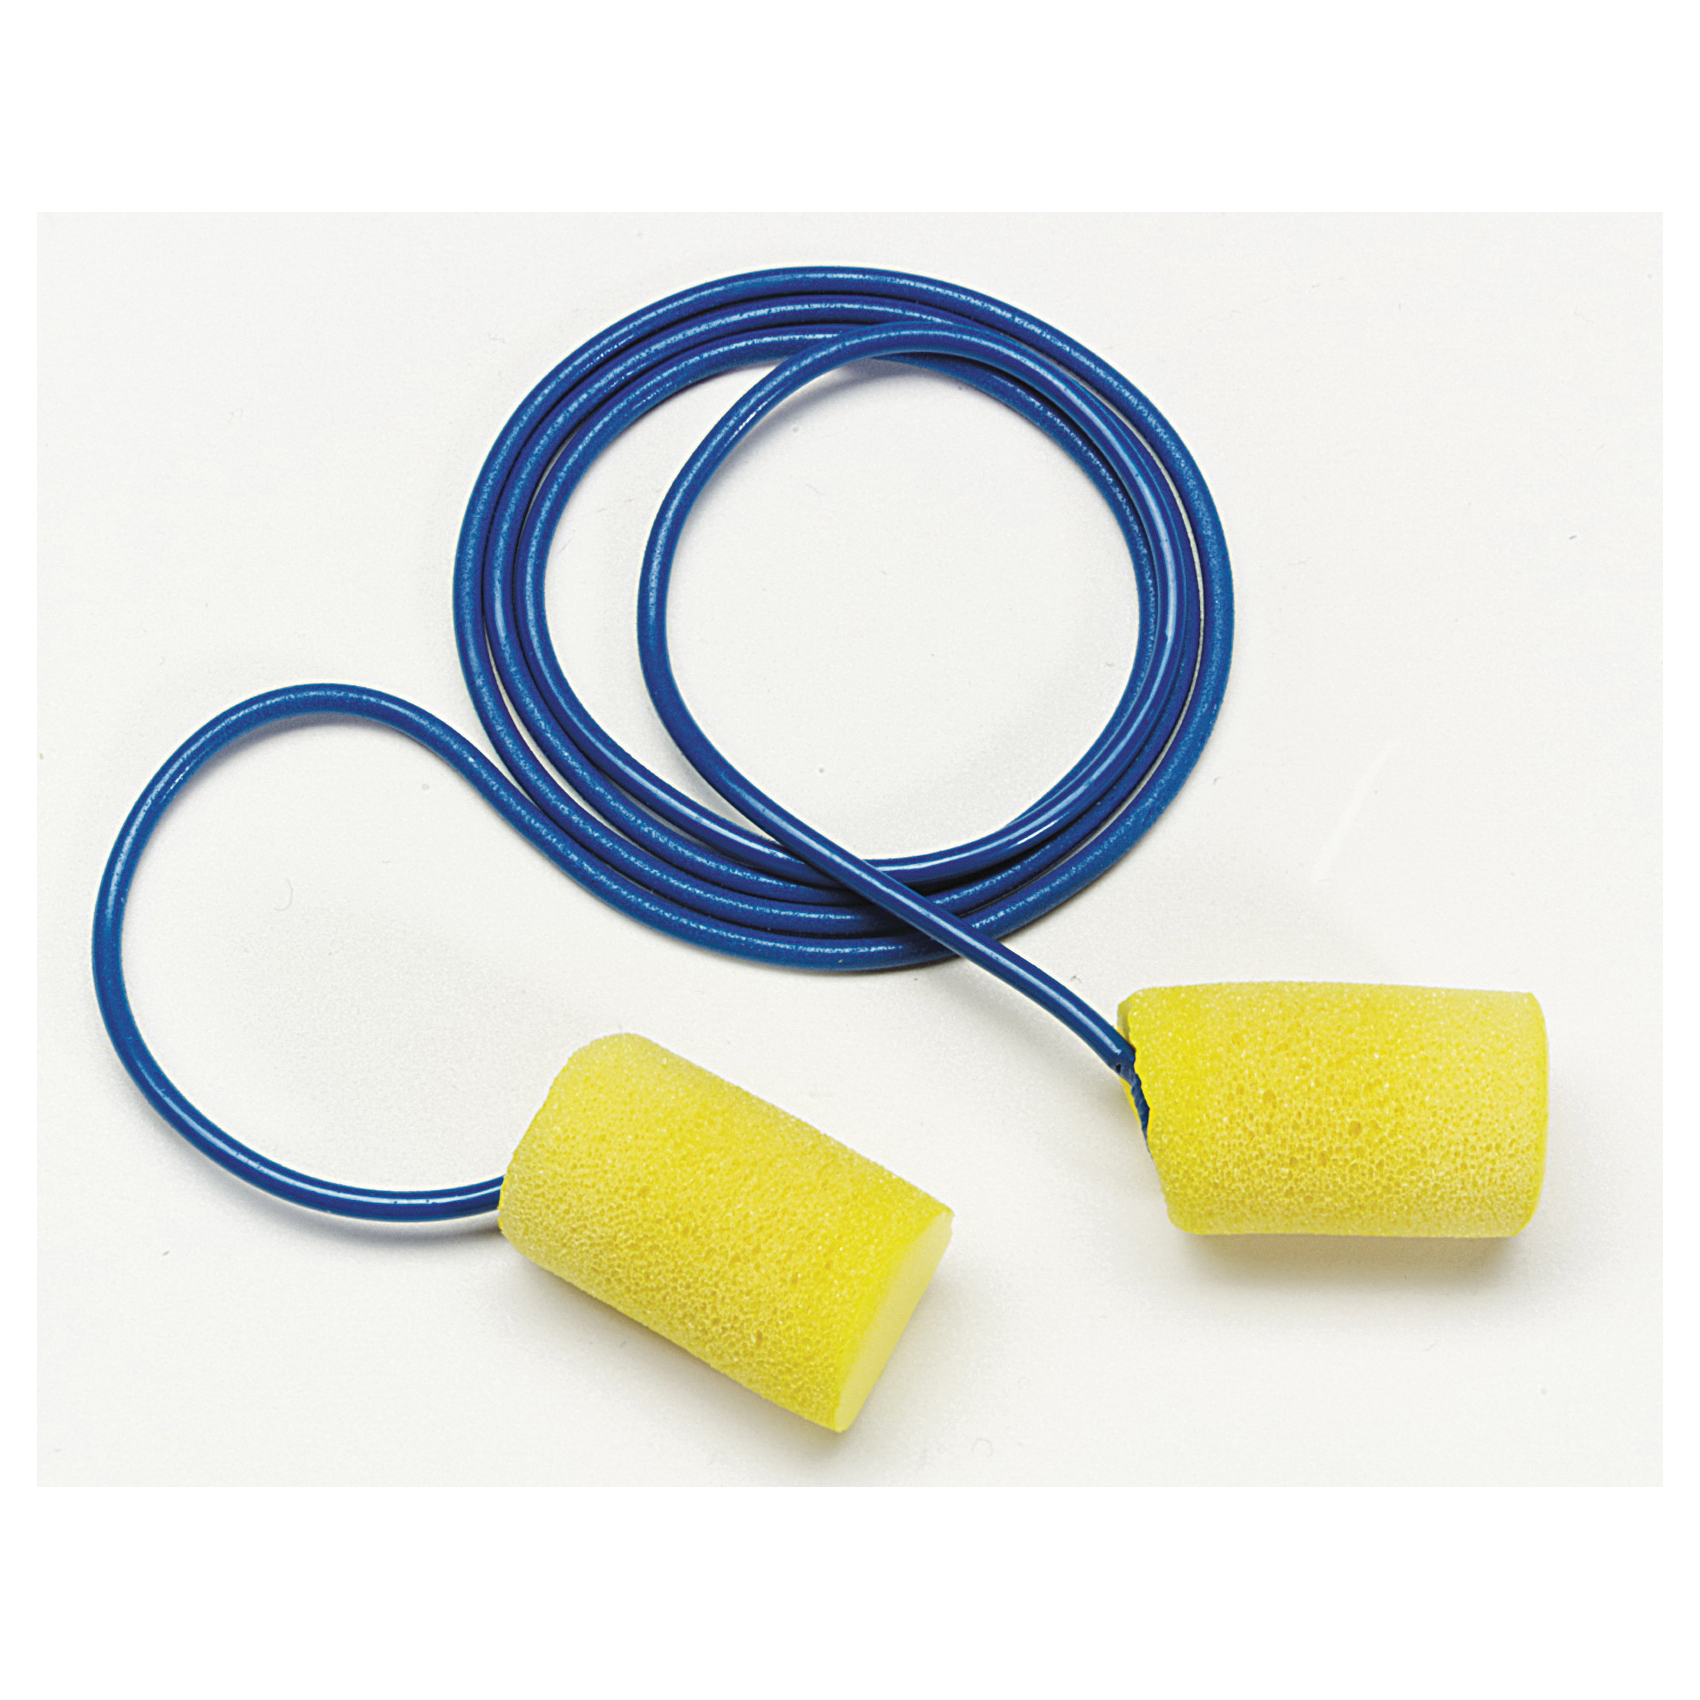 3M™ E-A-R™ Classic™ 080529-11023 Earplugs, 33 dB Noise Reduction, Cylindrical Shape, CSA Class AL, Disposable, Corded Design